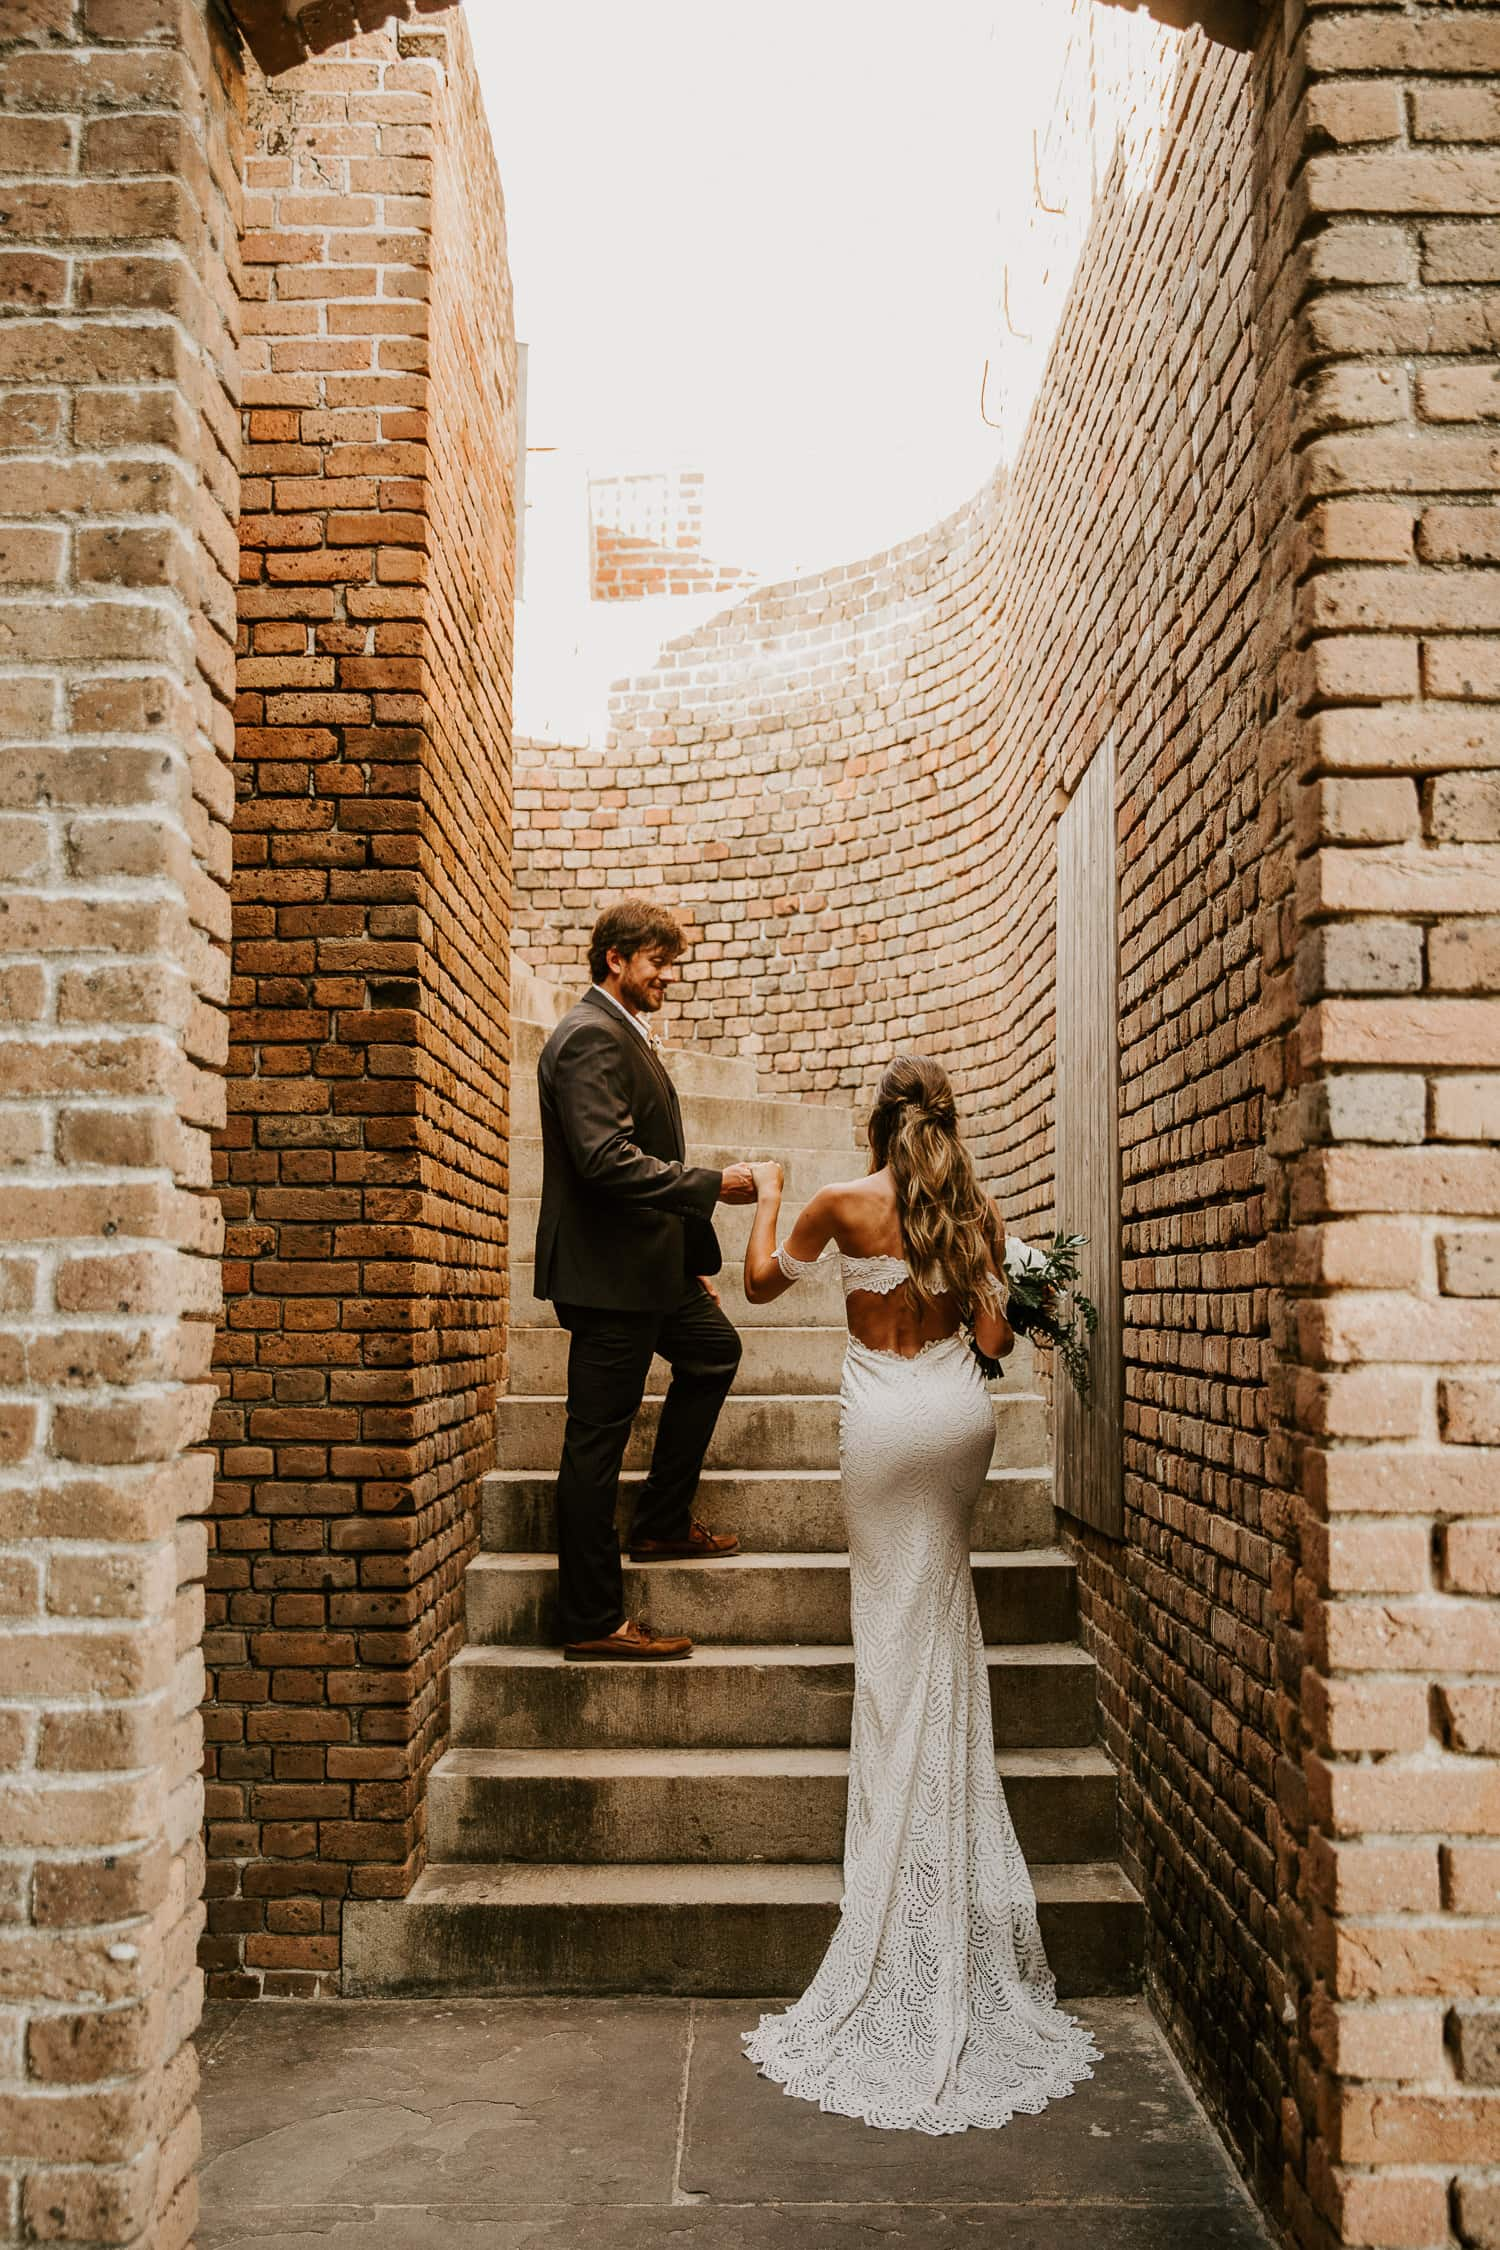 Bride and groom walking up a brick staircase at Fort Zachary Taylor, which is one of the best places to elope in Florida.